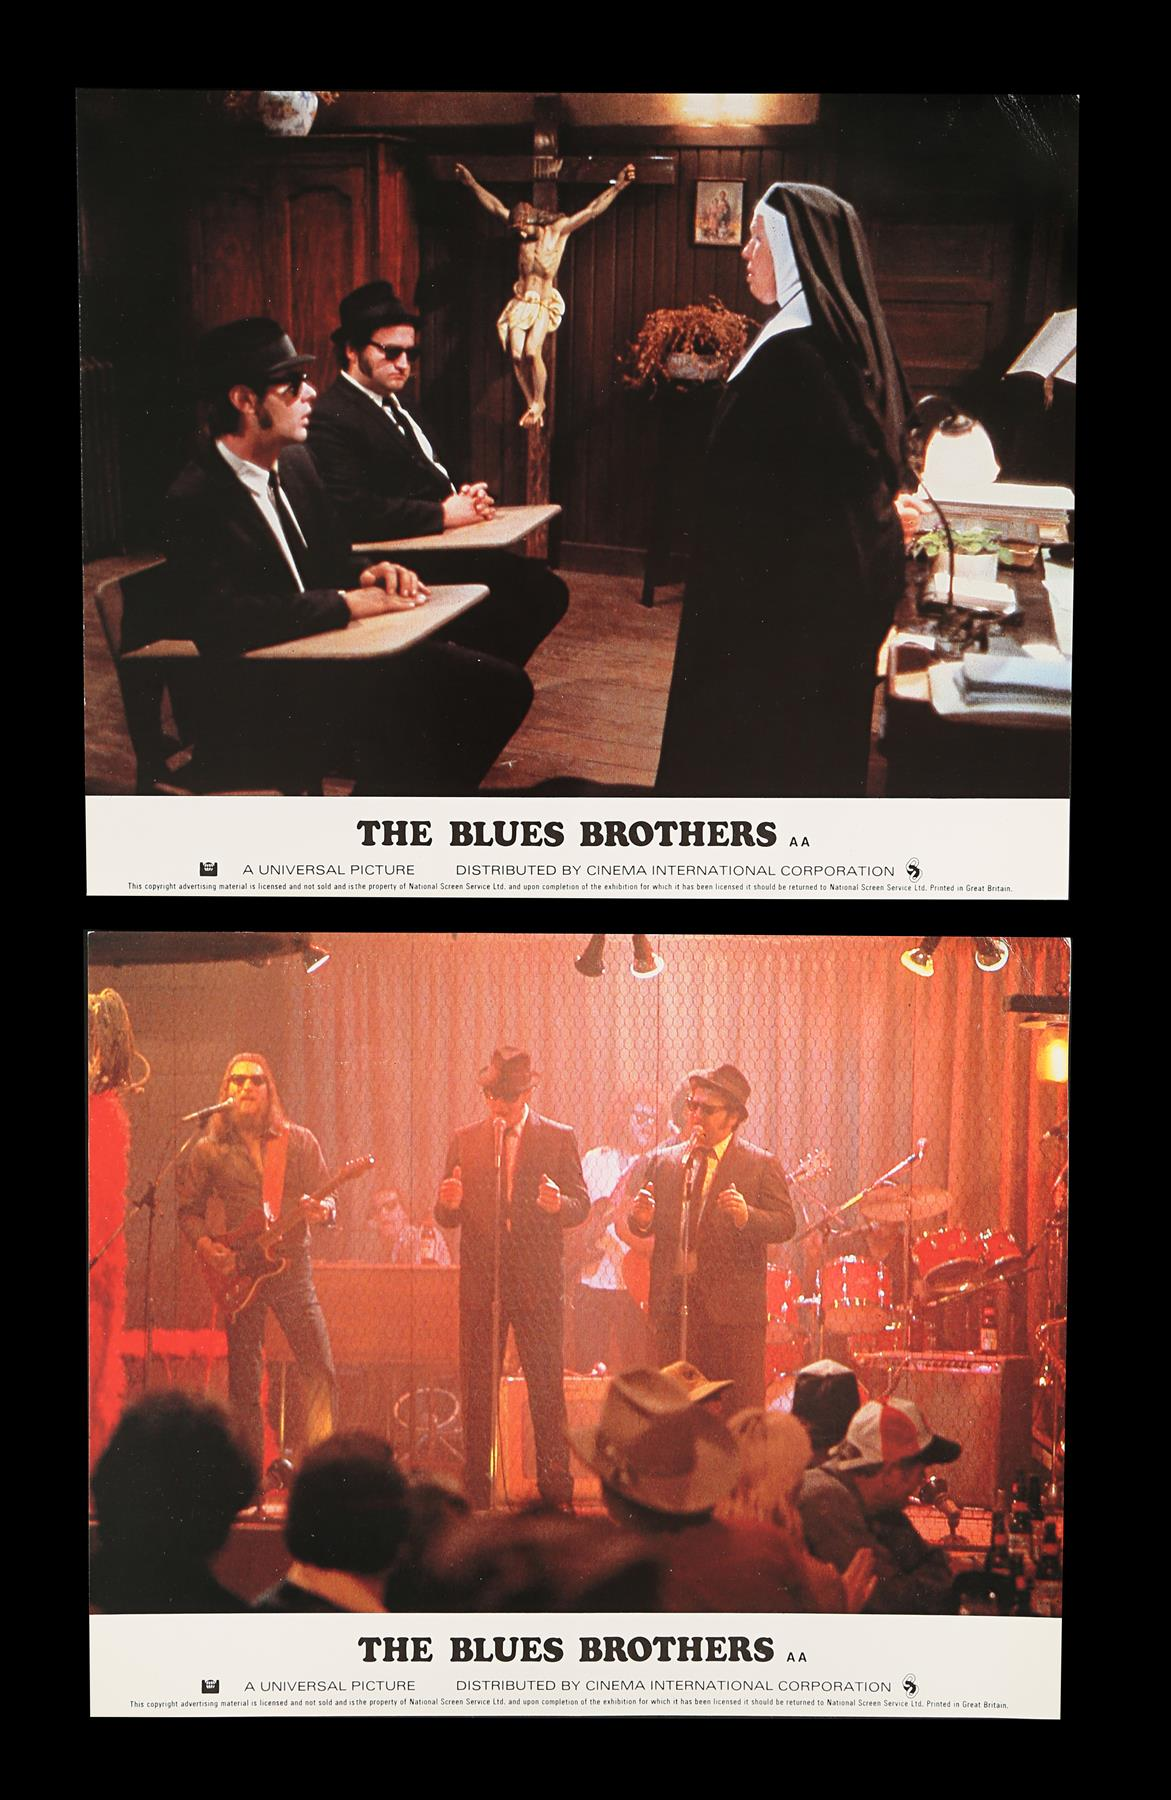 THE BLUES BROTHERS (1980) - Eight British Front of House Lobby Cards, 1980 - Image 4 of 5